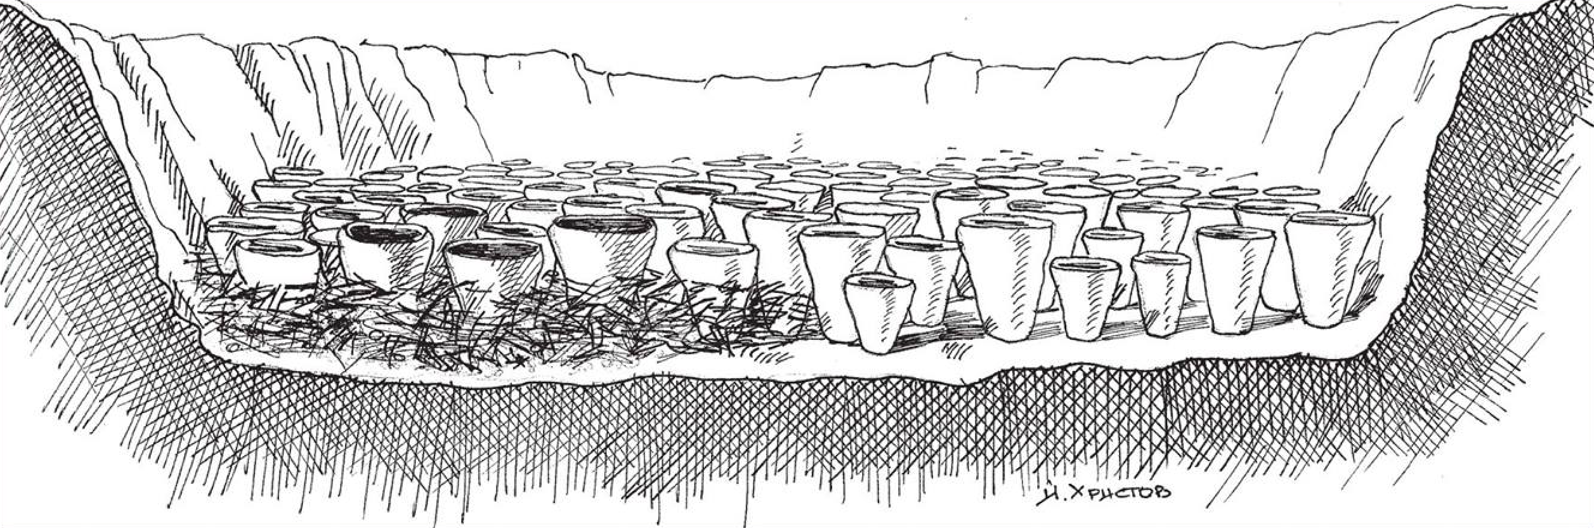 salt production vessels drawing